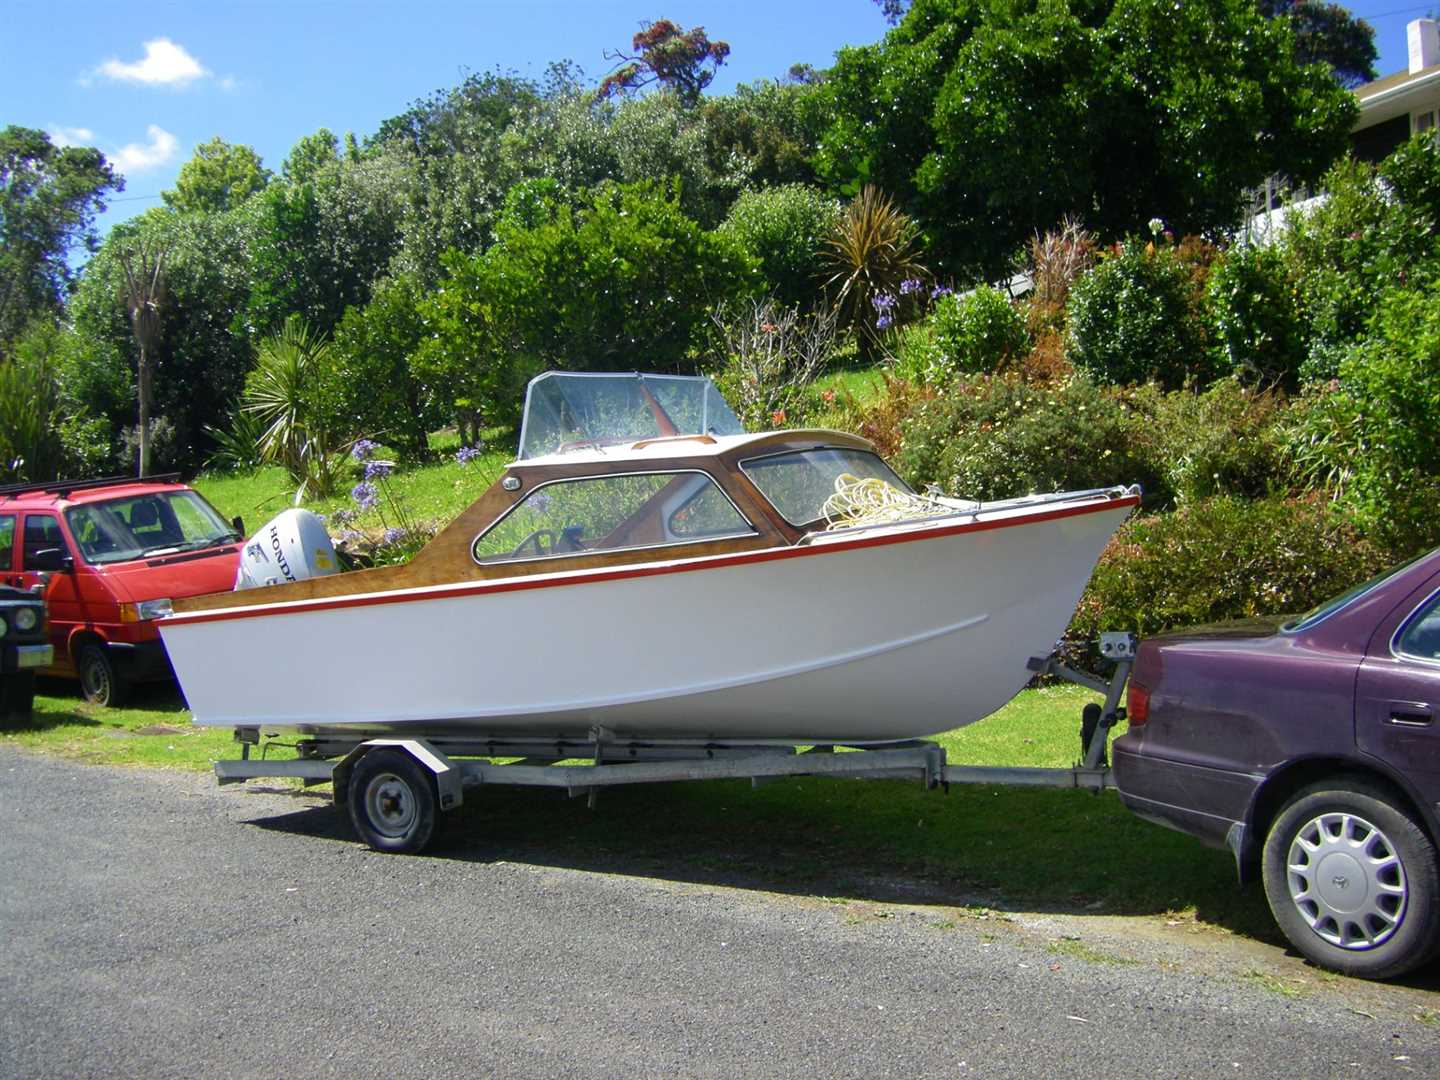 and the boat comes free! (excludes the outboard)